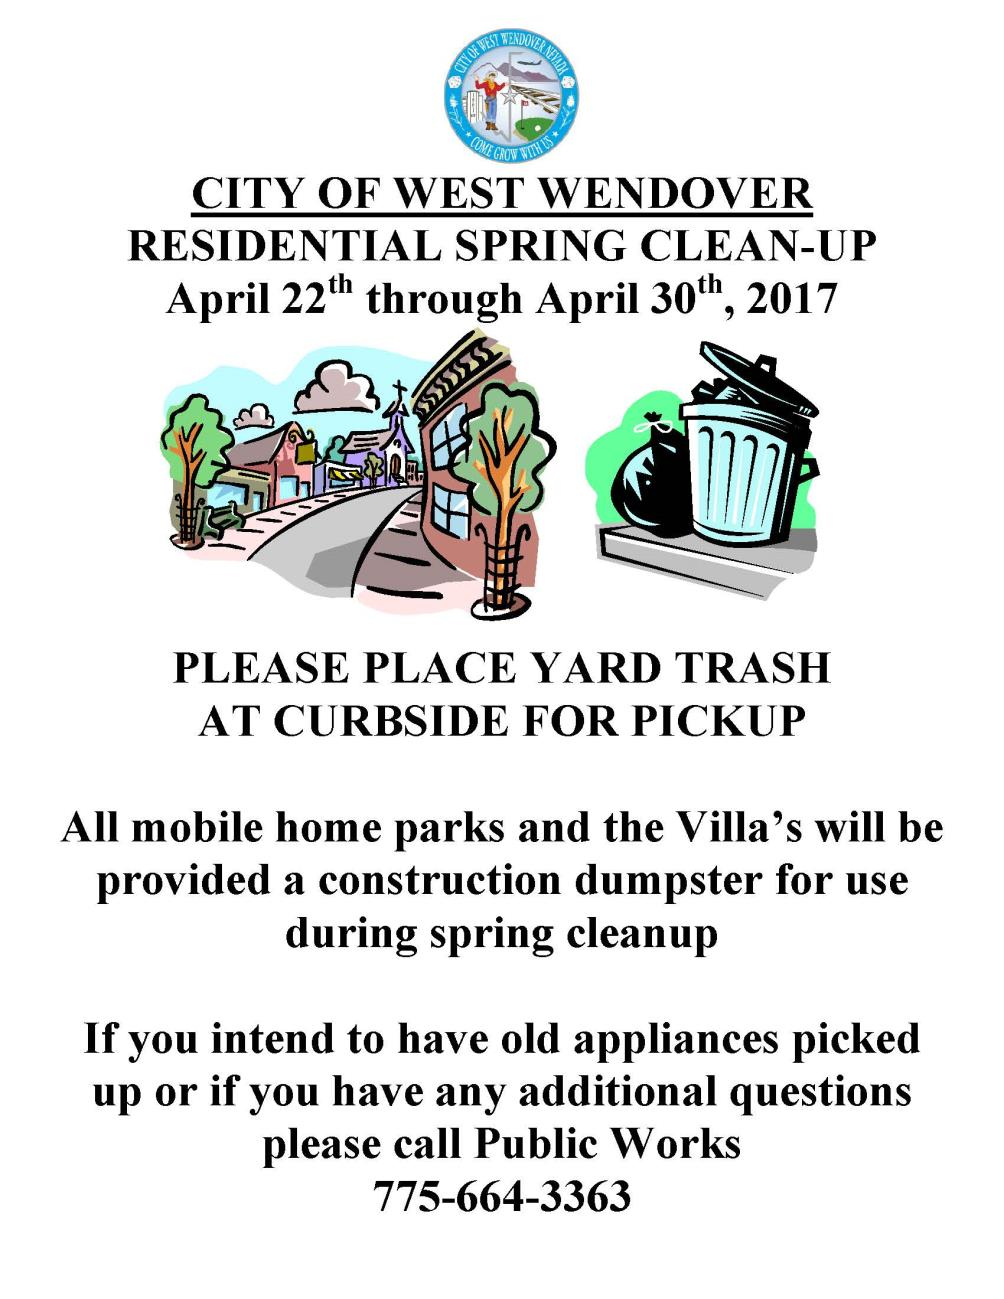 2017 Spring Clean Up Flyer Image